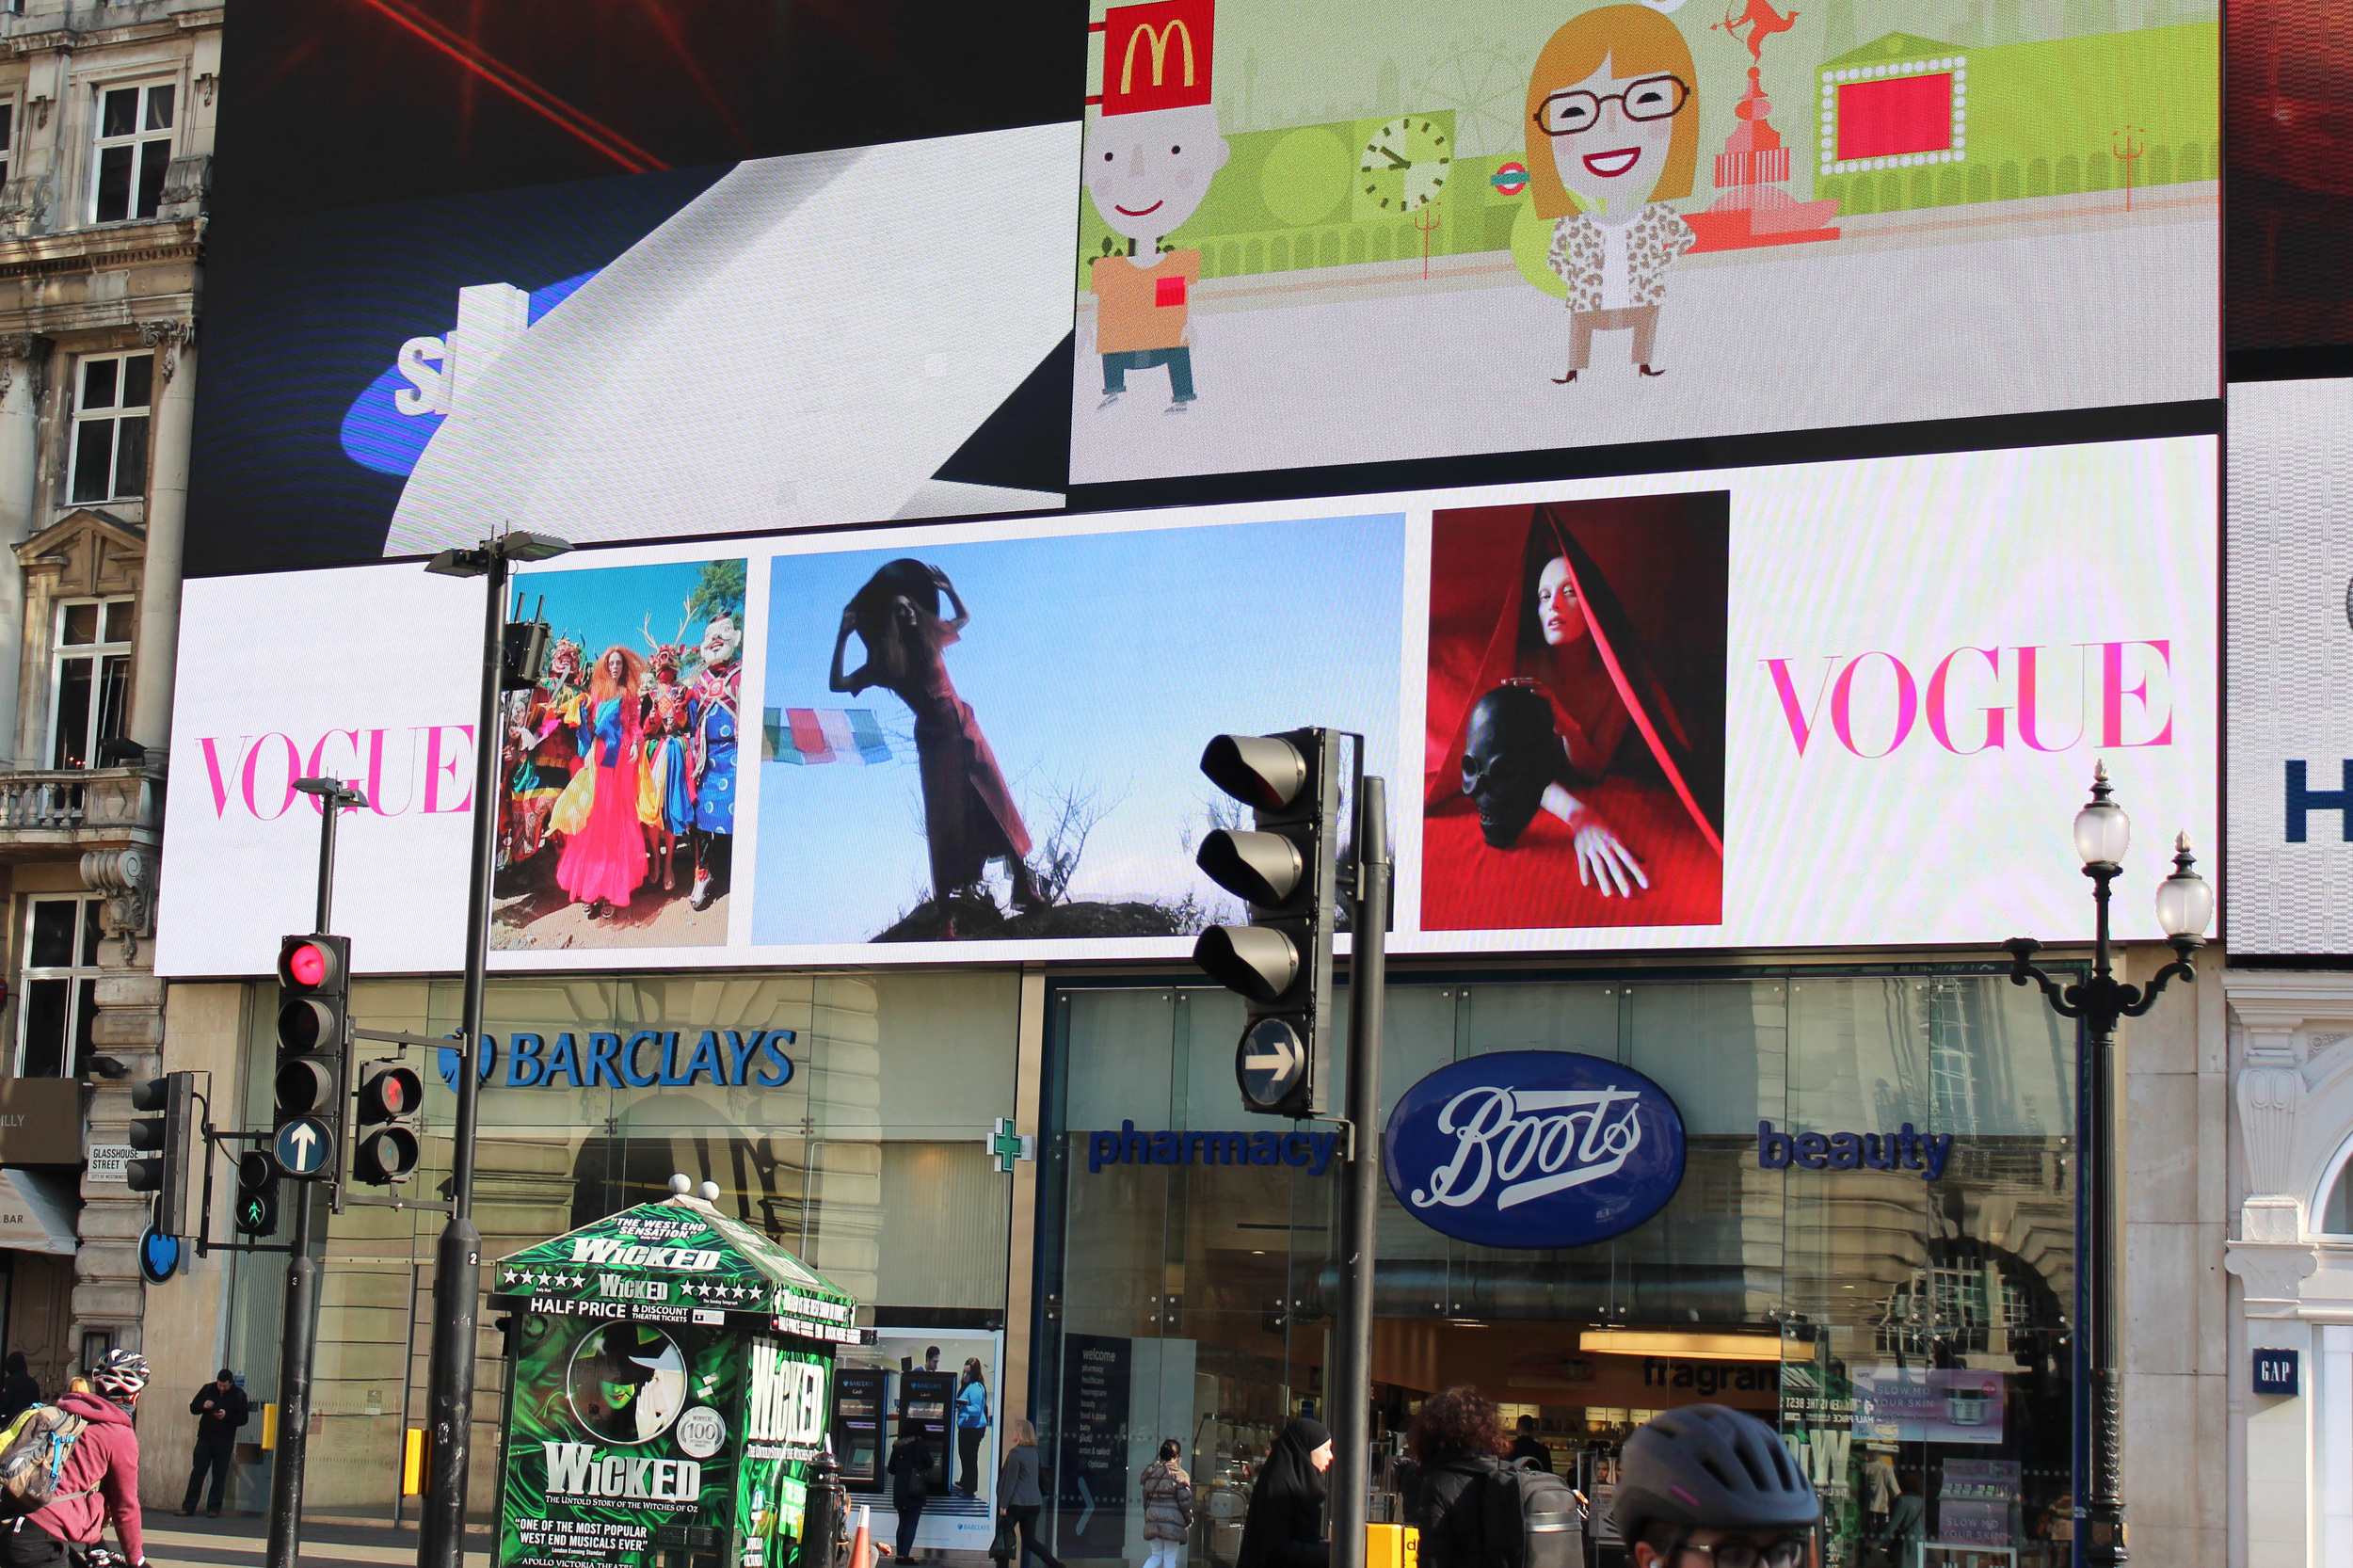 Vogue - June Ad Piccadilly Circus